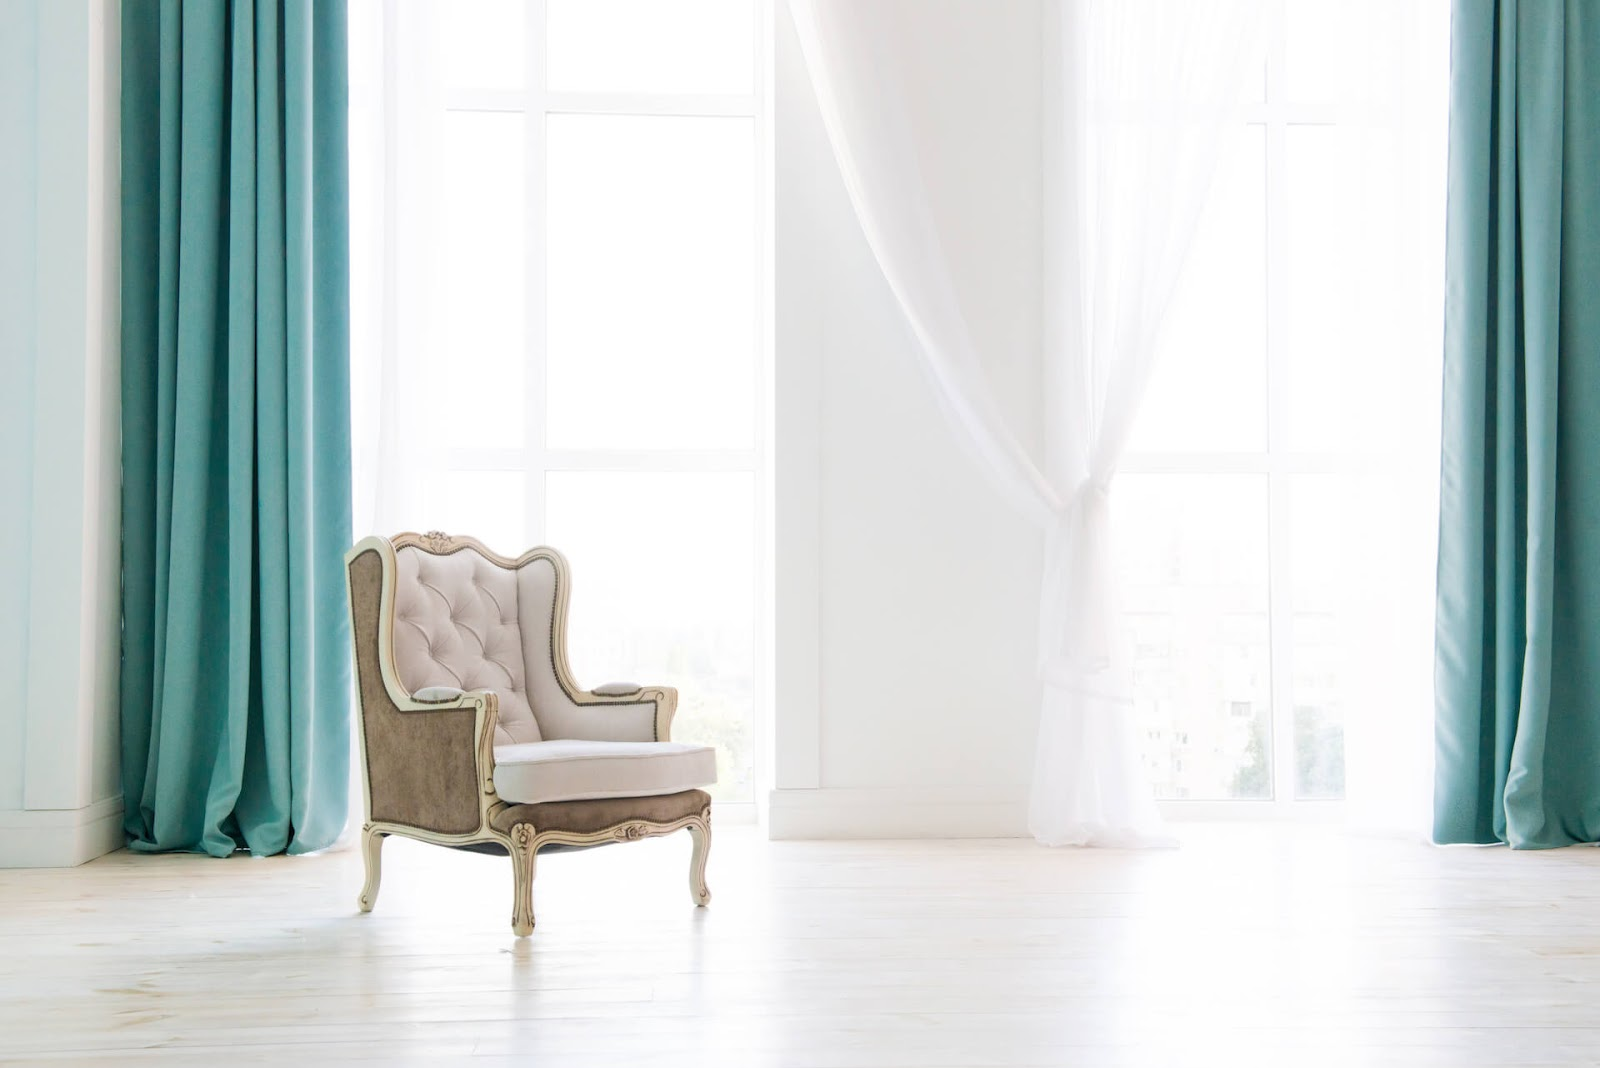 White wingback chair in white room with teal, floor-to-ceiling curtains